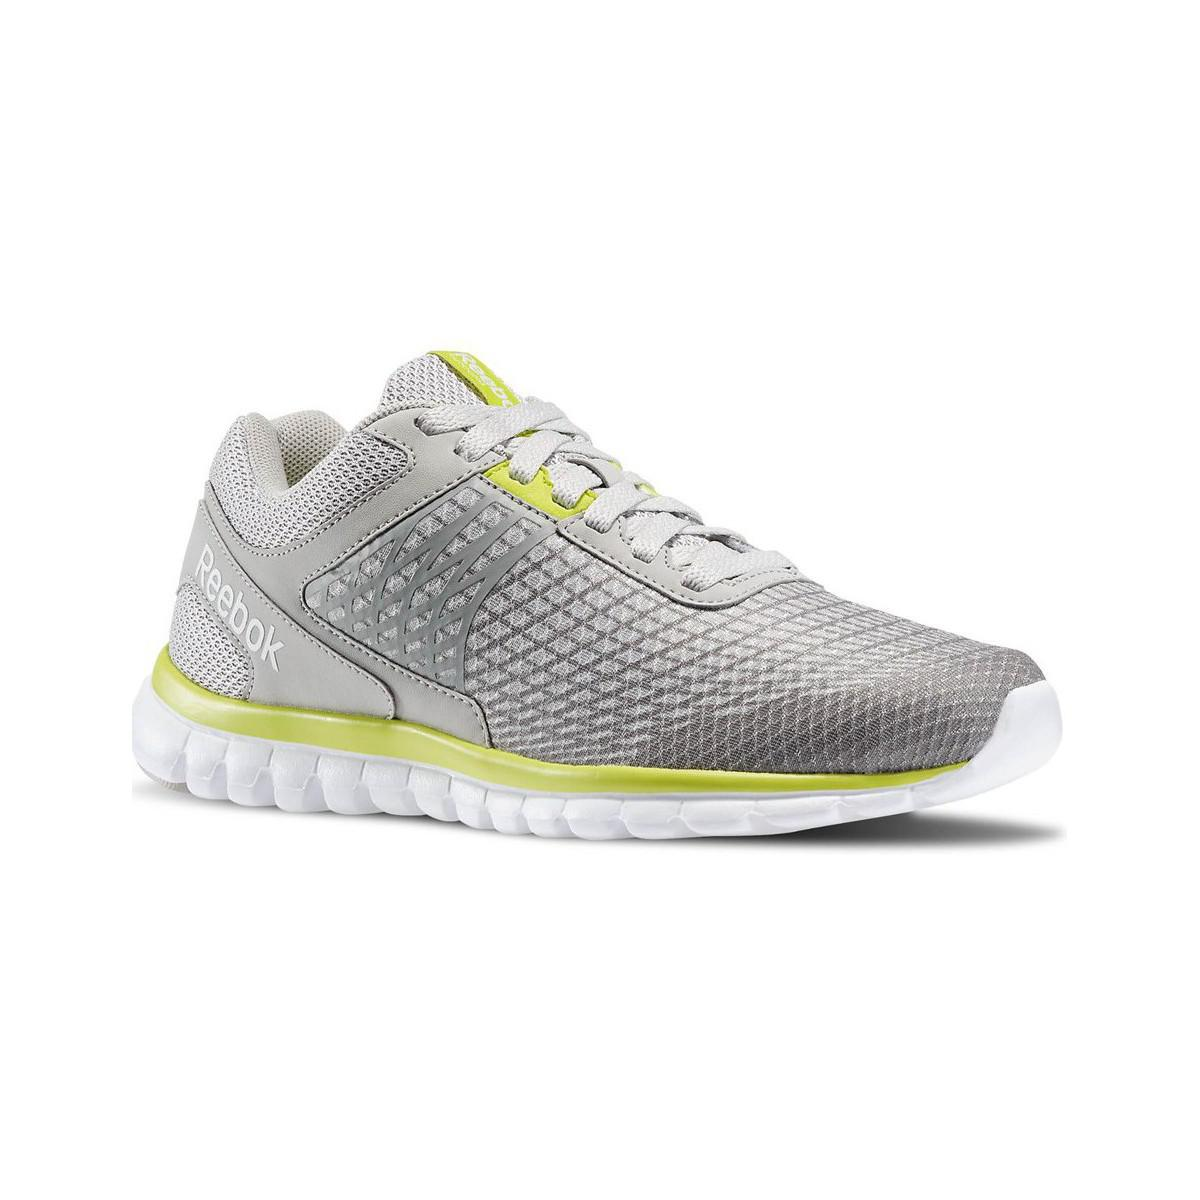 0f0e4362b6c Lyst - Reebok Sublite Escape Men s Running Trainers In Grey in Gray ...